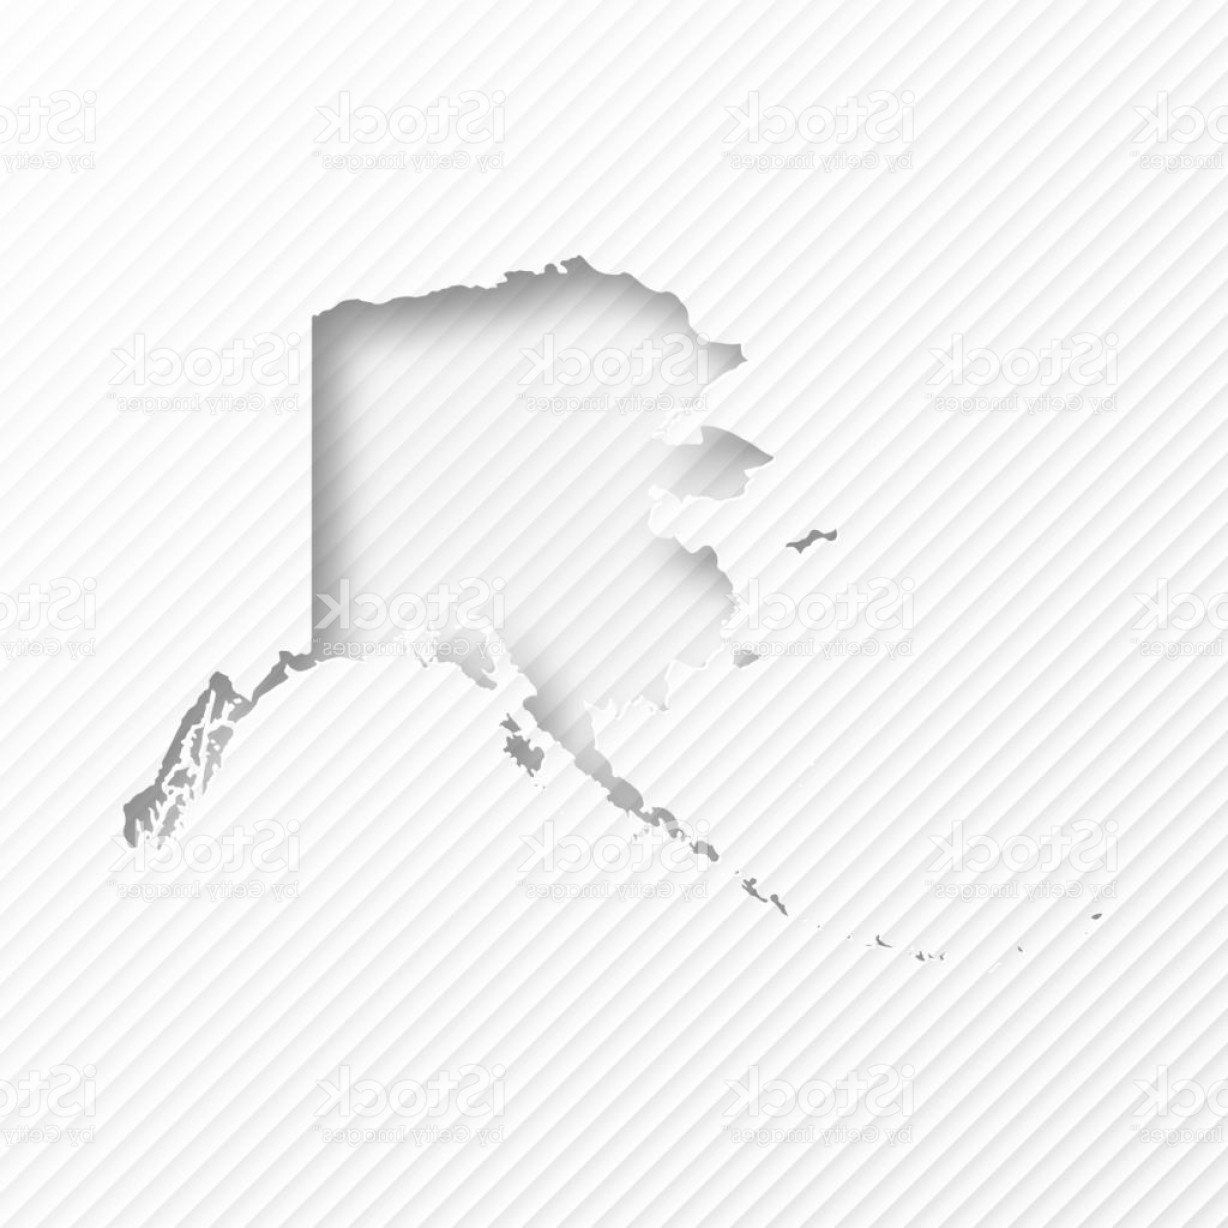 Alaska State White Background Vectors: Alaska Map With Paper Cut On Abstract White Background Gm